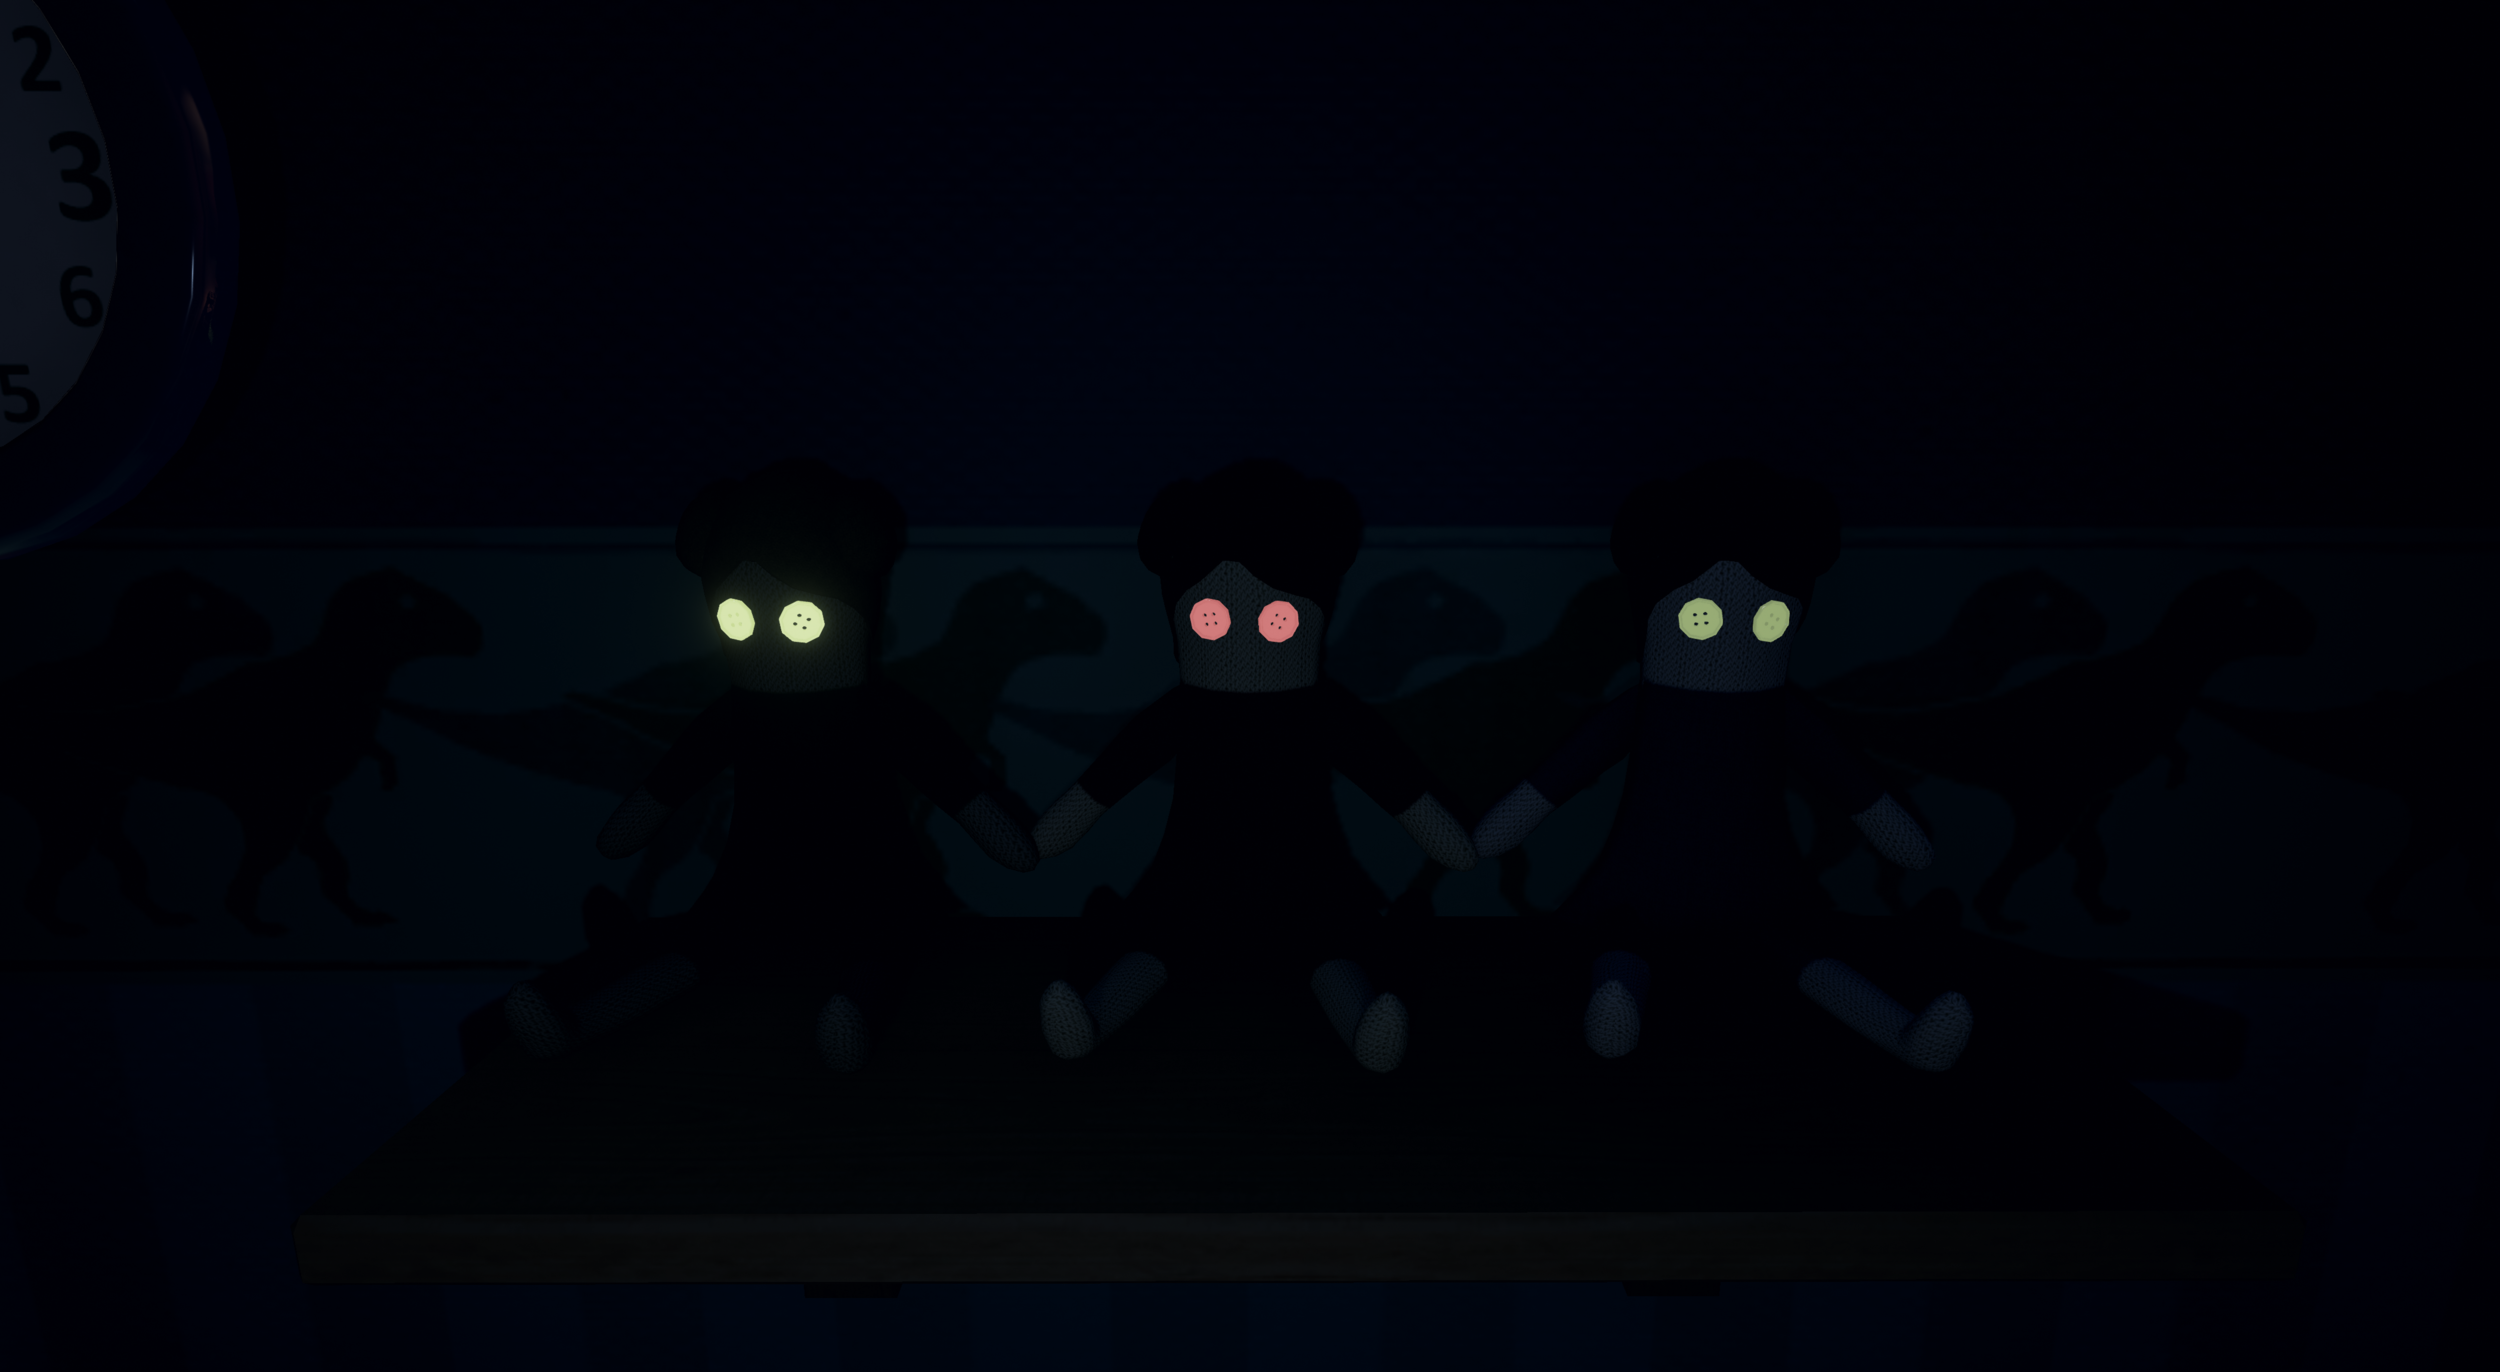 Teddy keeps popping up on lit shelves throughout the game.His counterpart;the dolls seen in this picture, hides on shelves shrouded in darkness.